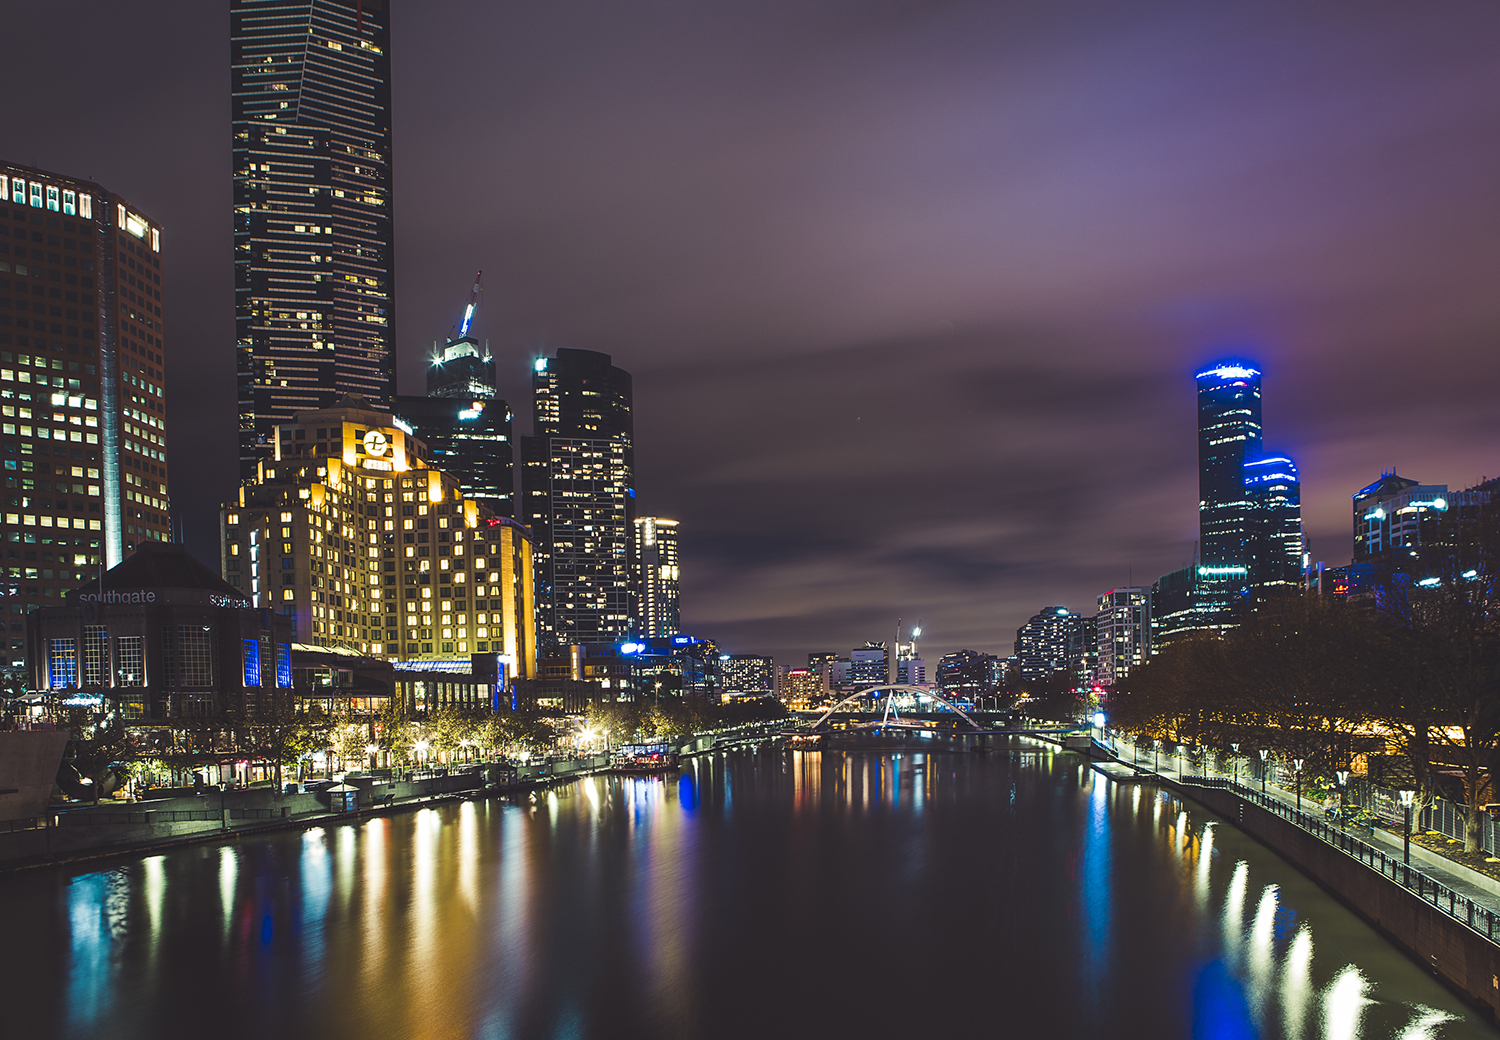 Night Photography Course - Get off auto mode and shoot in manual mode the cityscape. Control ISO, Shutter Speed & Aperture creatively. Master Composition and walk away with the confidence to shoot in low light.Price: $99. Approx. 3 hours